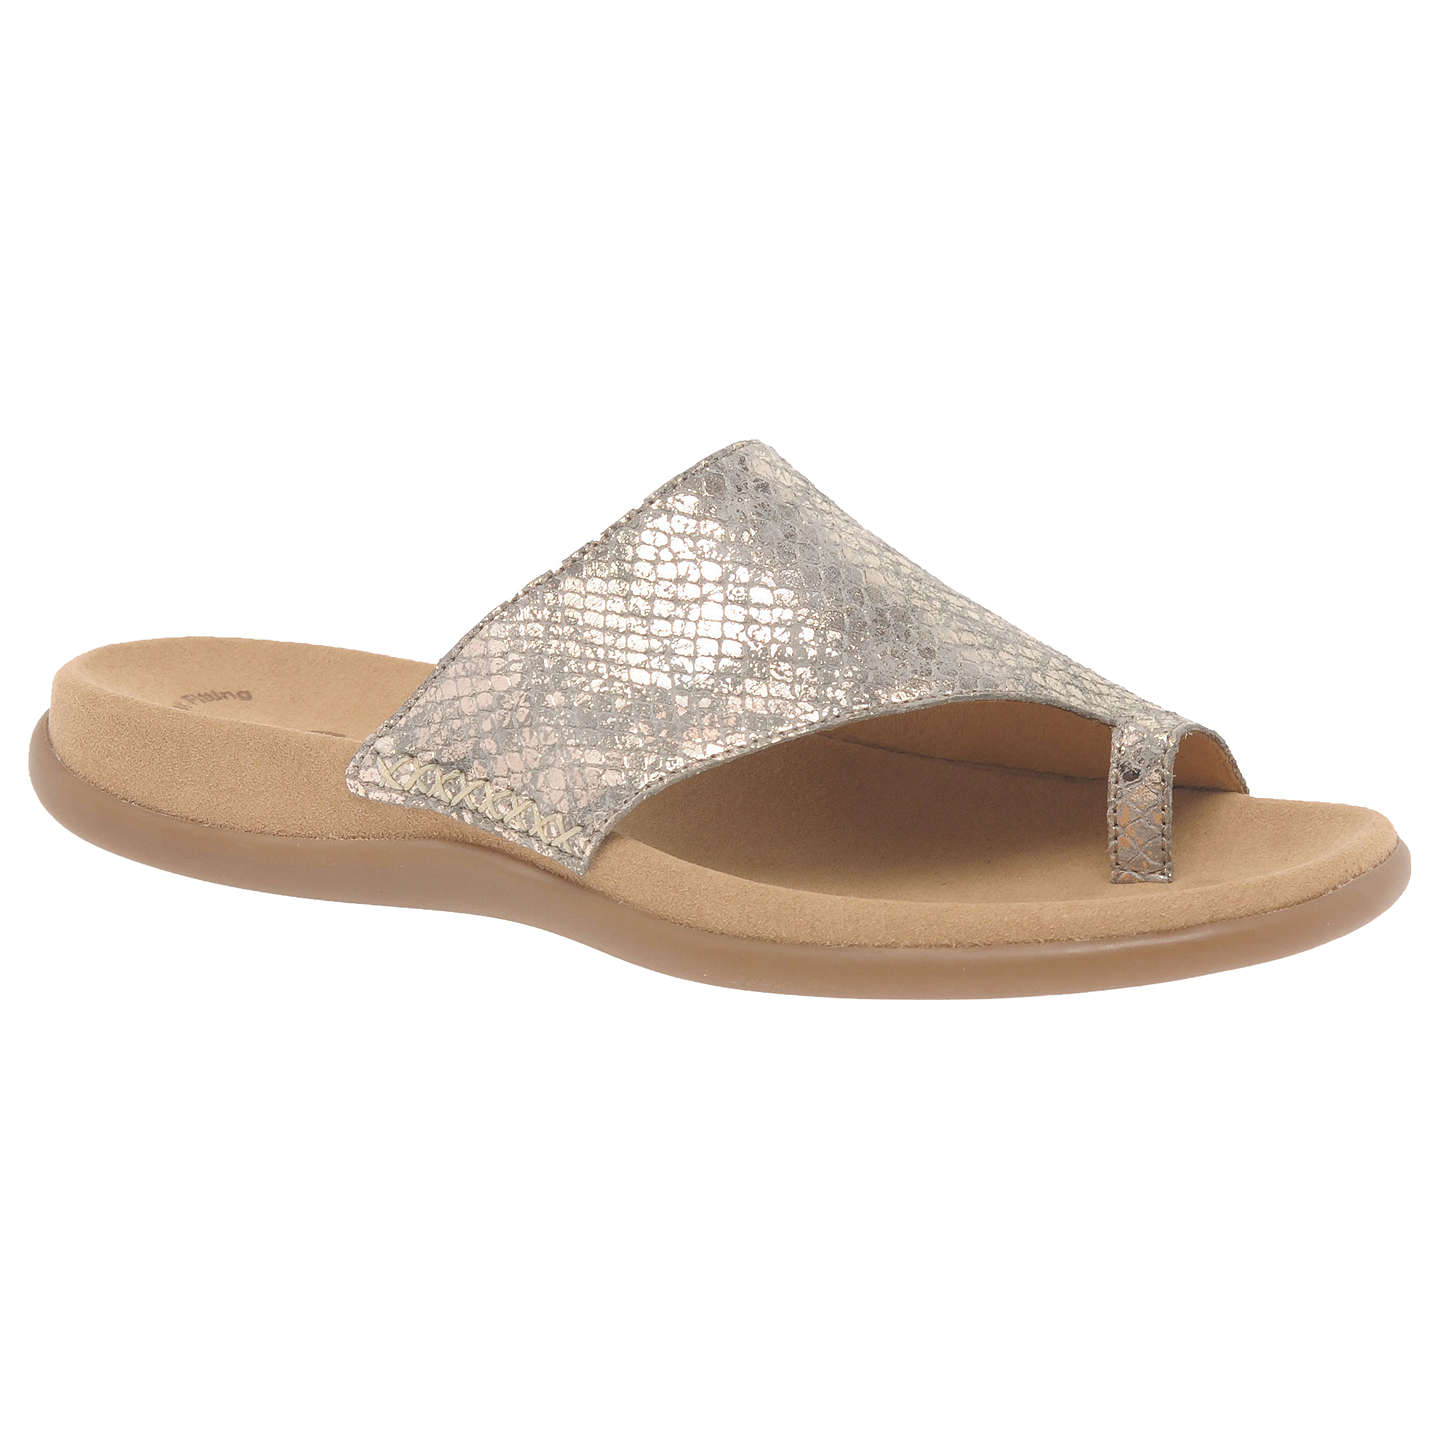 BuyGabor Lanzarote Slip On Sandals